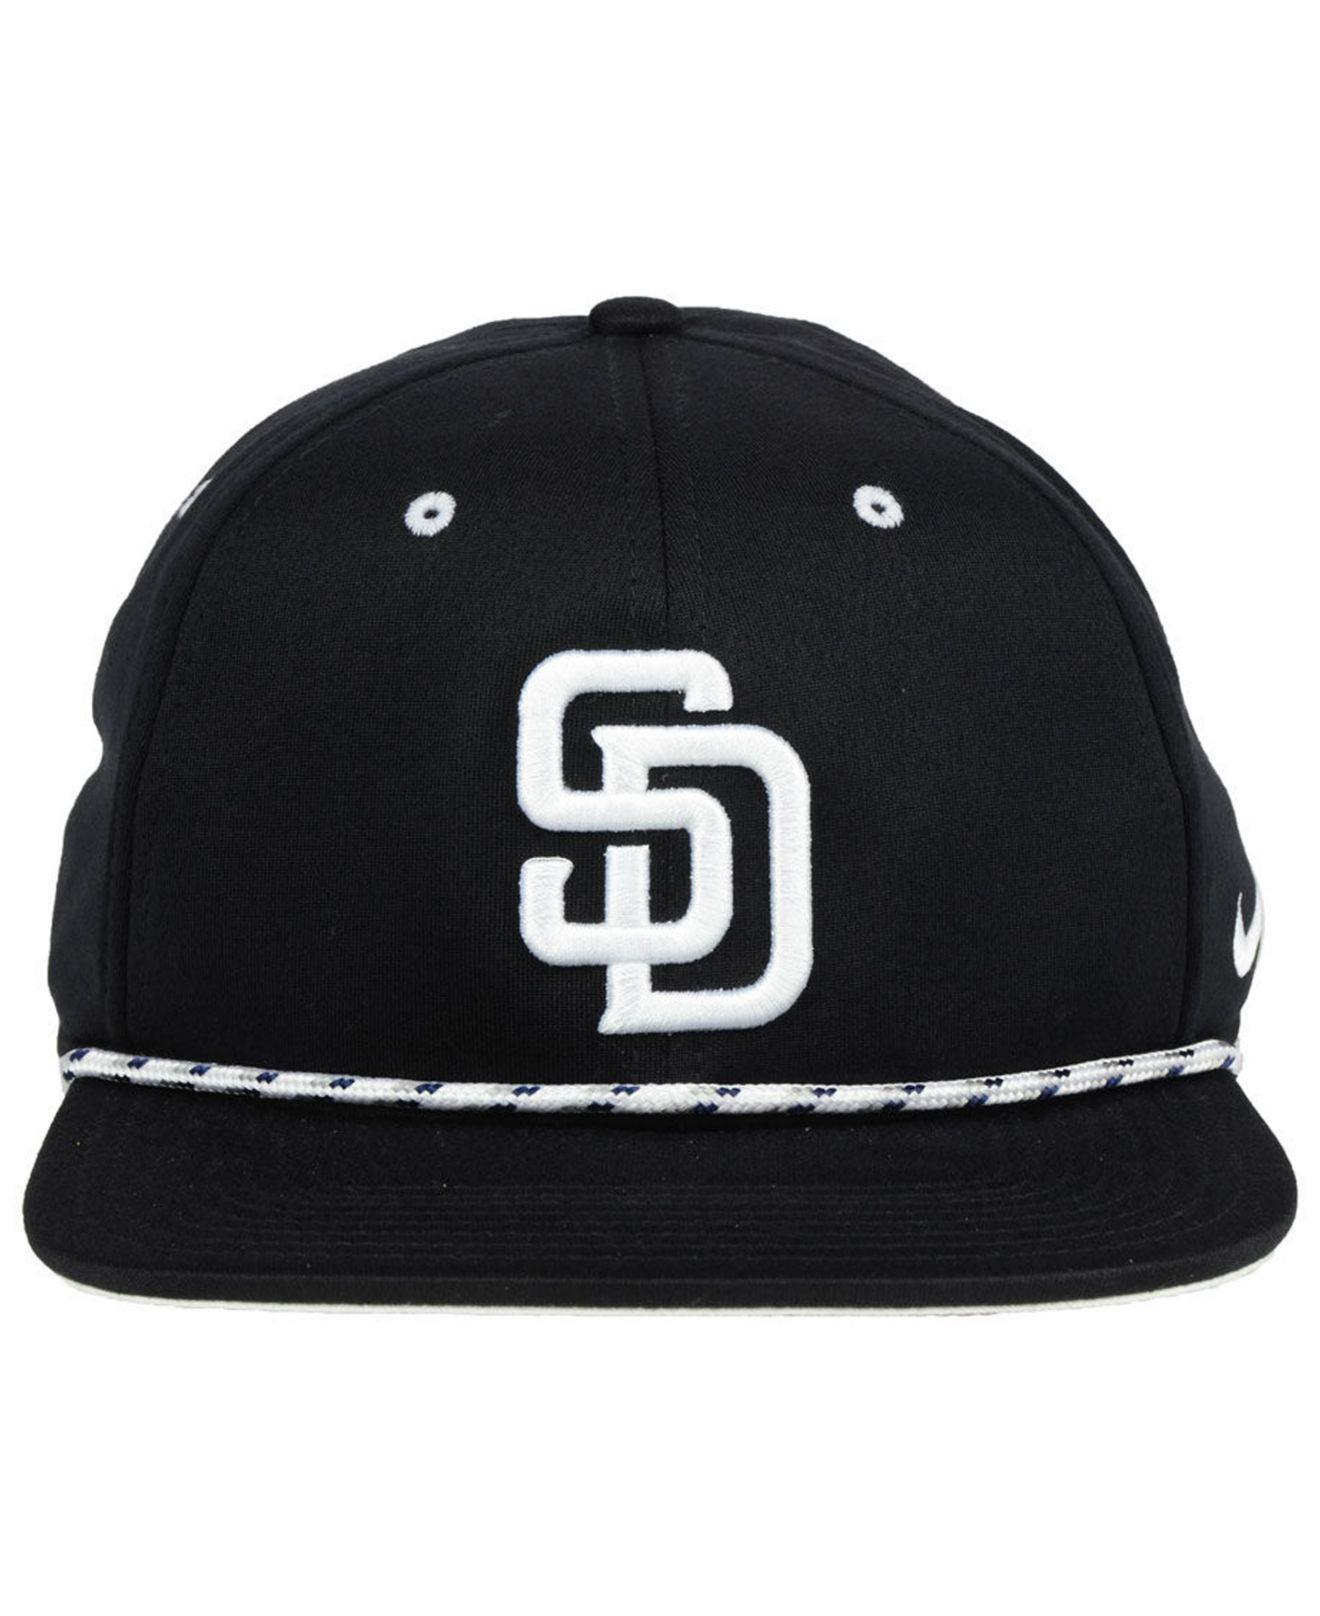 newest 4e43a 72c67 ... reduced lyst nike san diego padres string bill snapback cap in black  for men c69df 24f8a